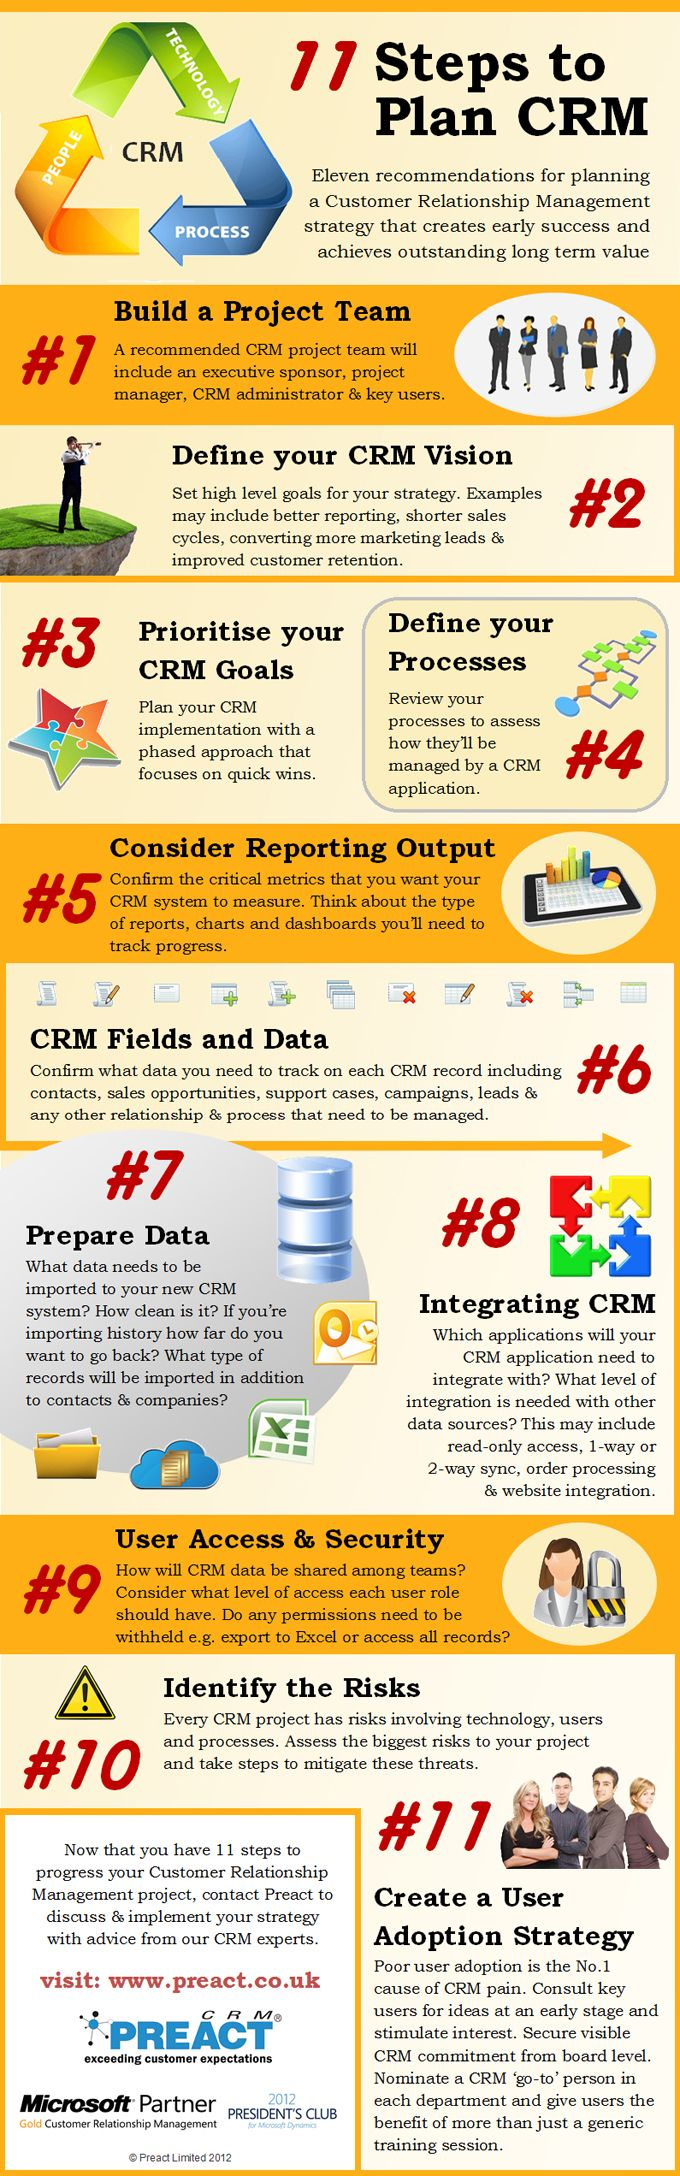 INFOGRAPHIC: 11 Steps To Plan CRM